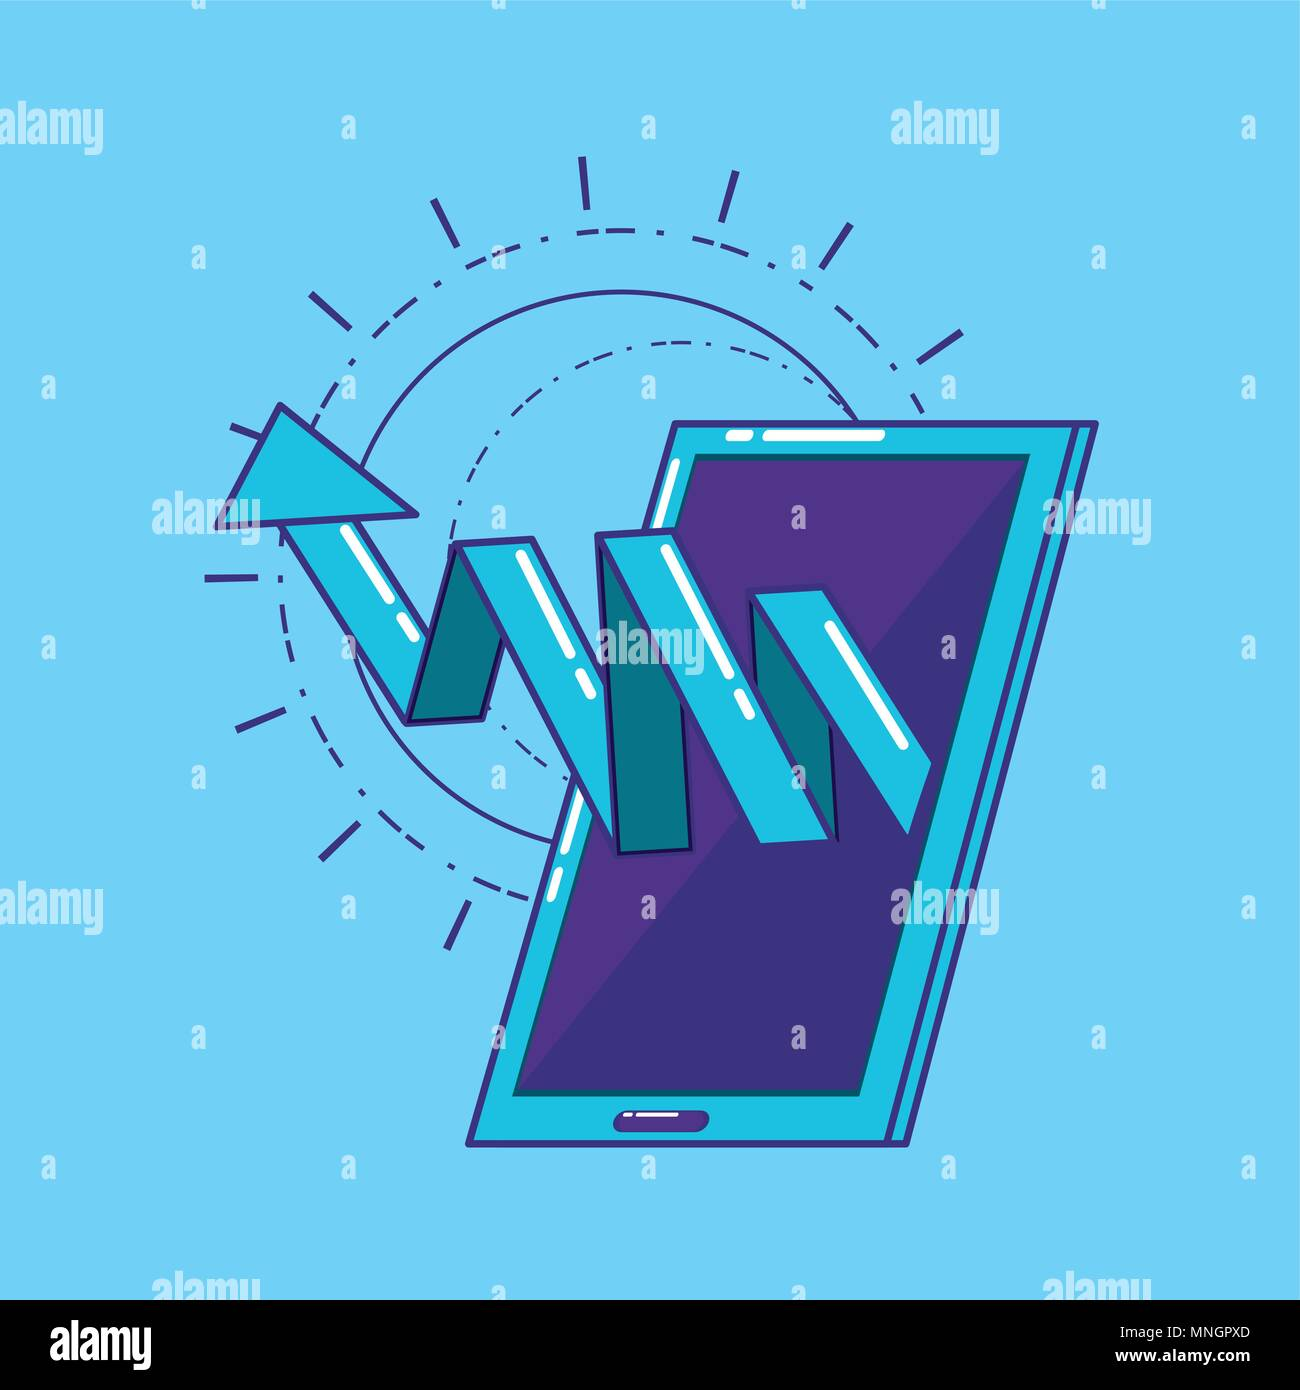 smartphone with financial arrow over blue background, colorful design. vector illustration - Stock Image